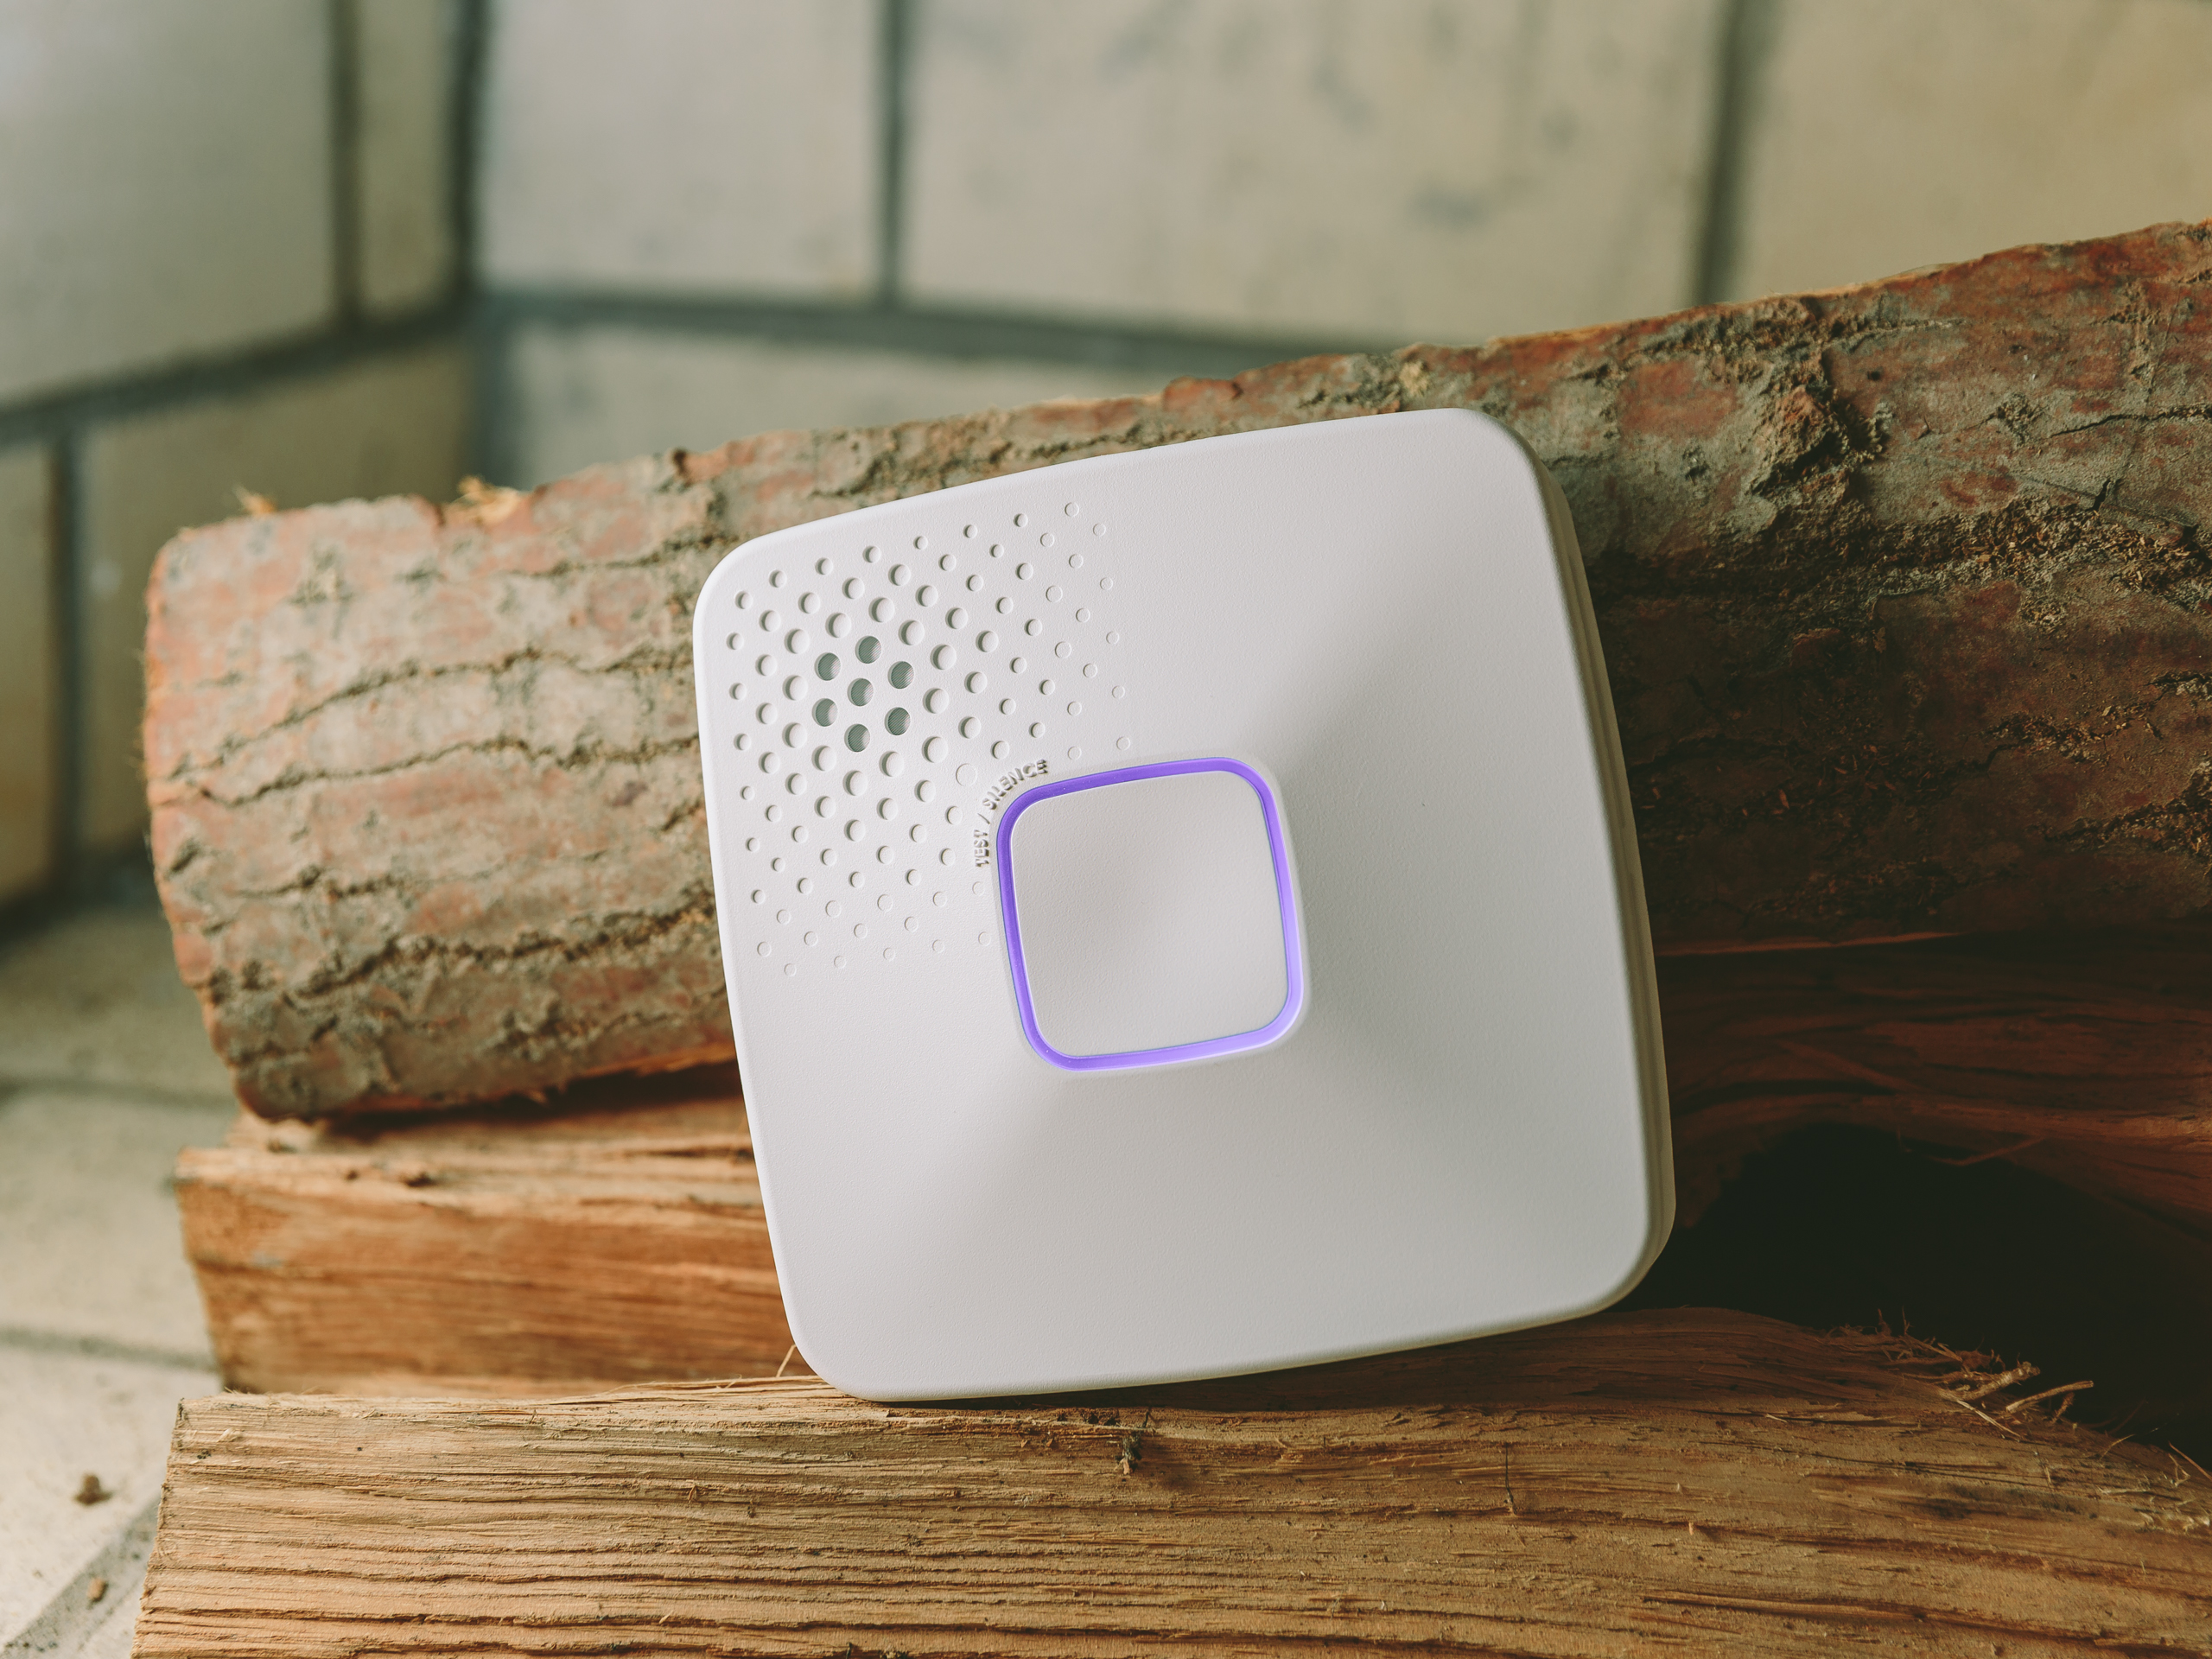 onelink-by-first-alert-wi-fi-and-co-alarm-product-photos-1.jpg